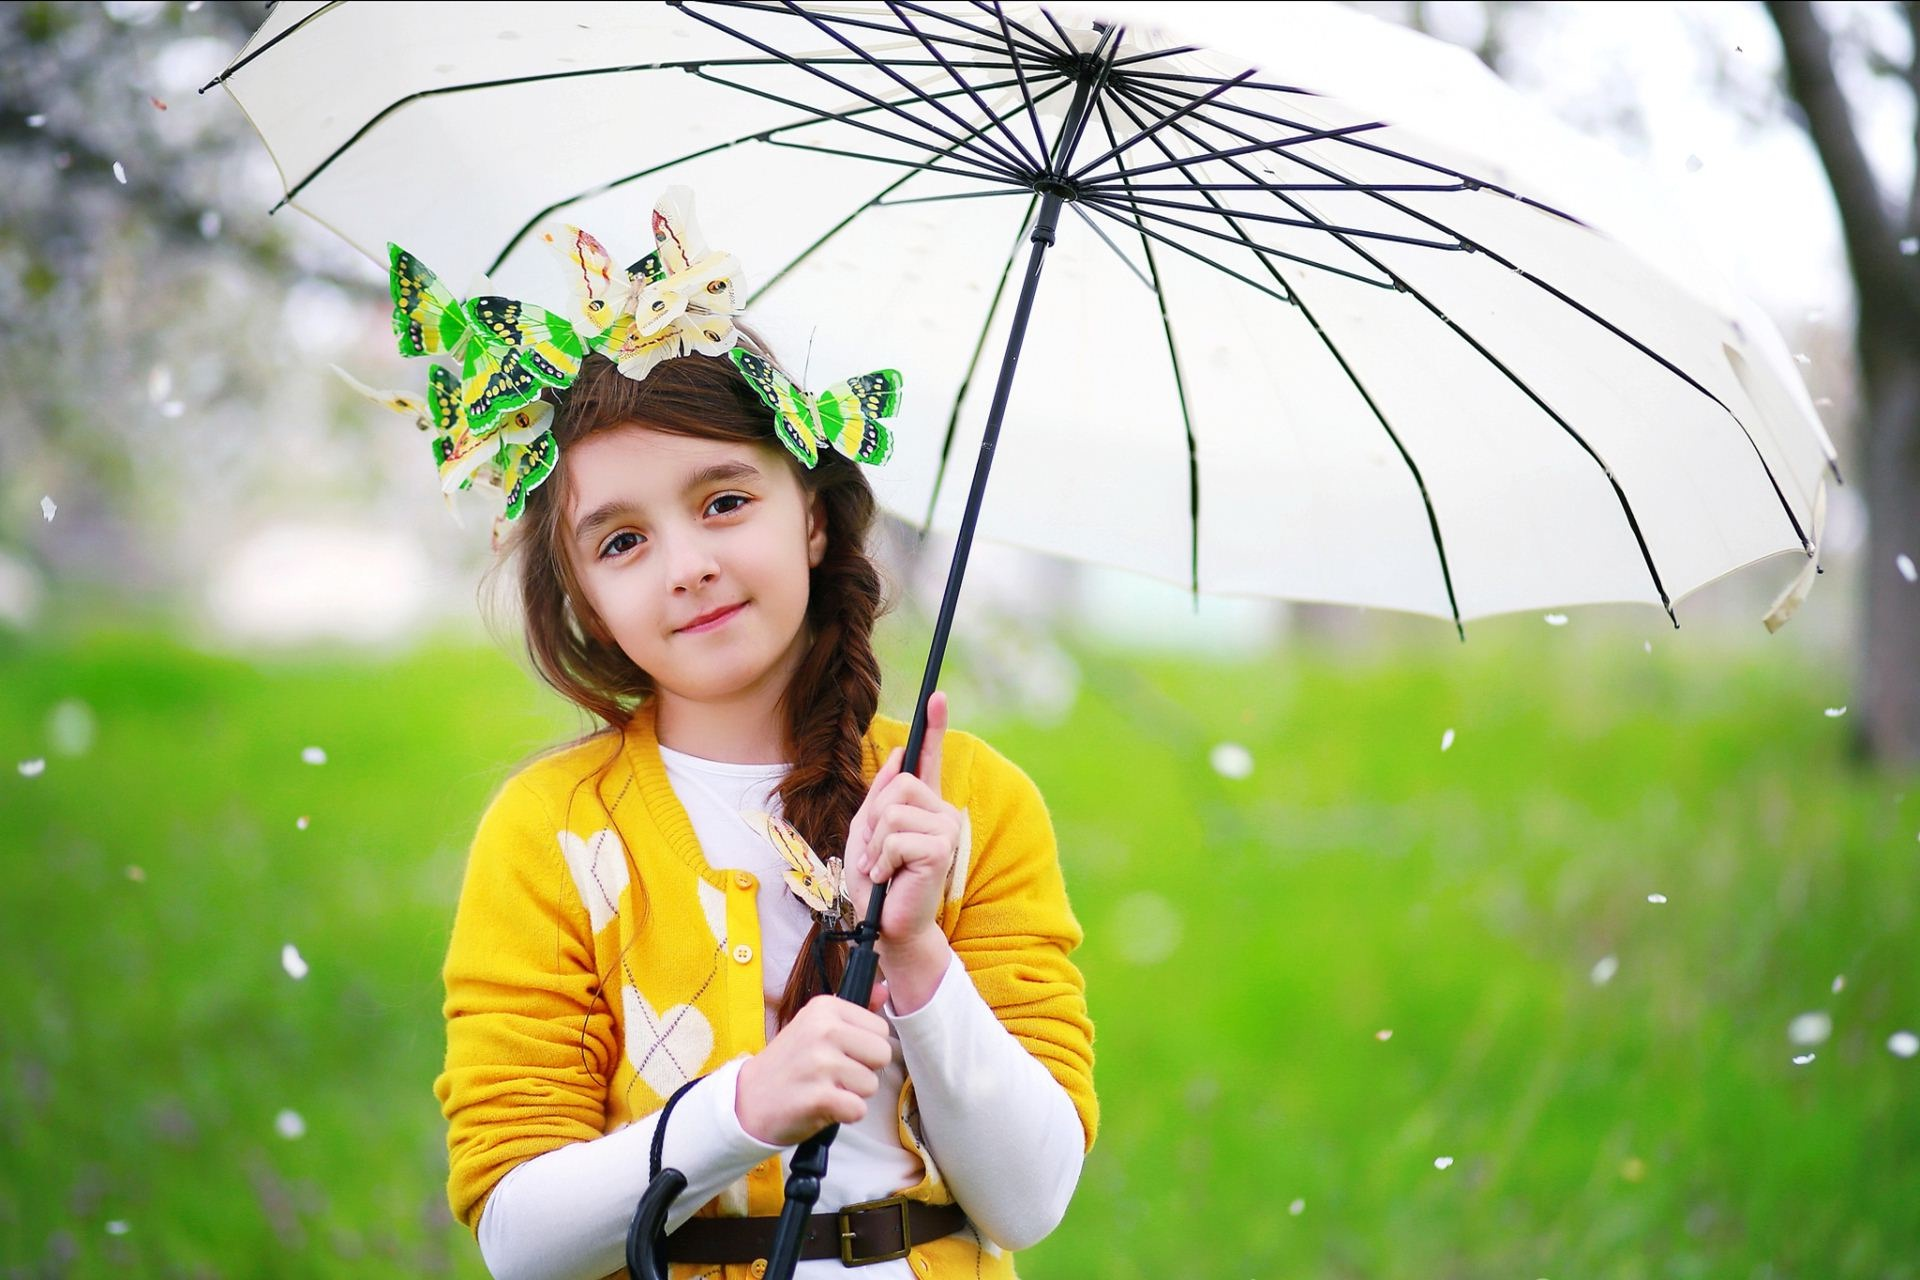 pretty cute girl with umbrella